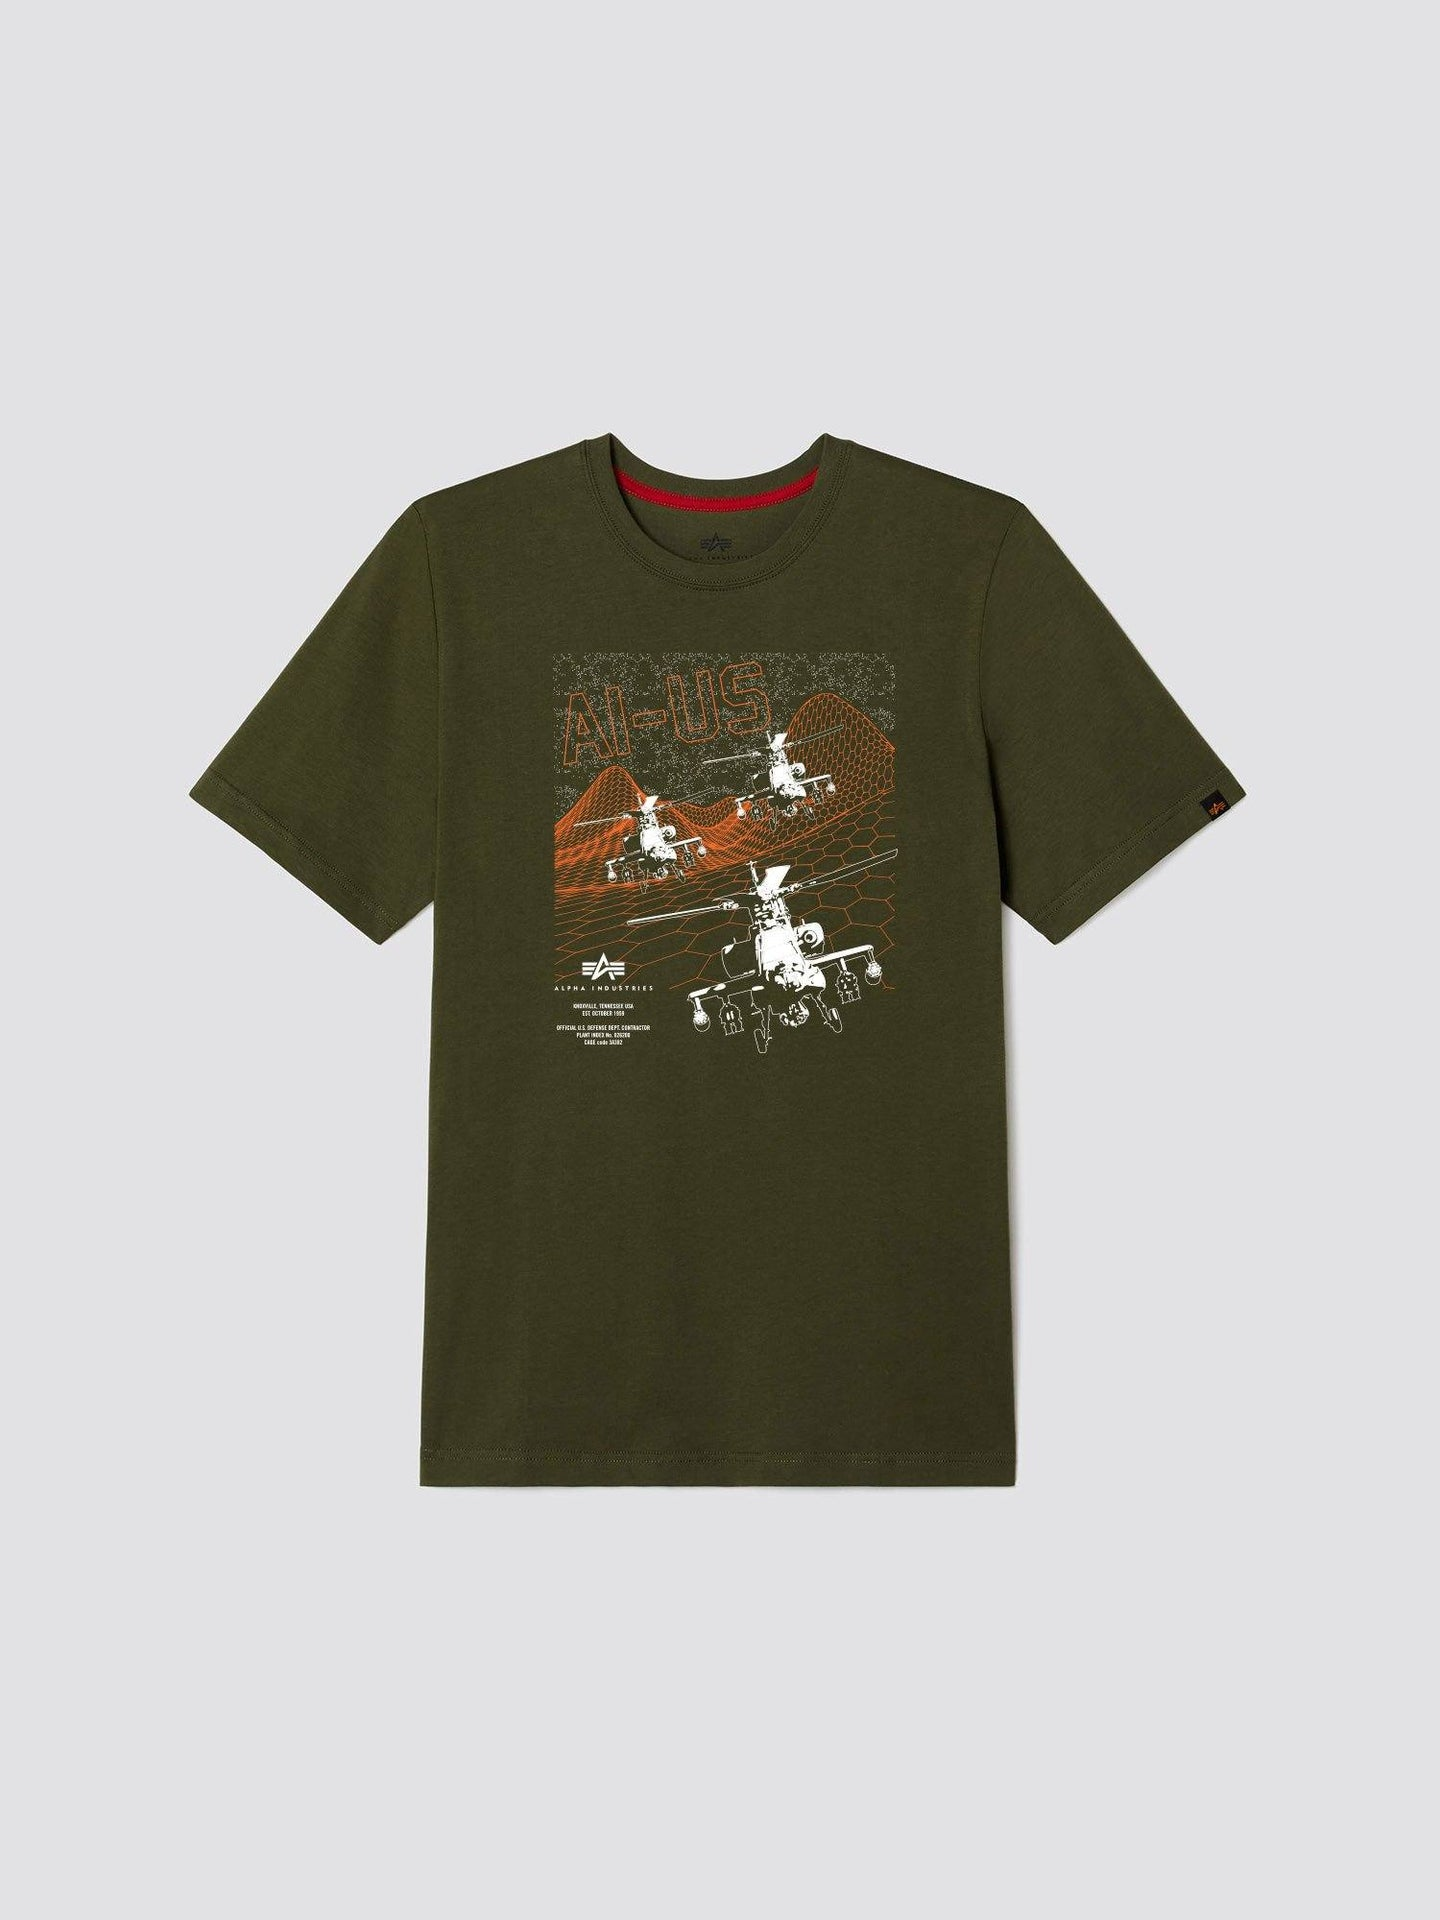 EXCLUSIVE BLACKHAWK TEE TOP Alpha Industries, Inc. OLIVE 2XL